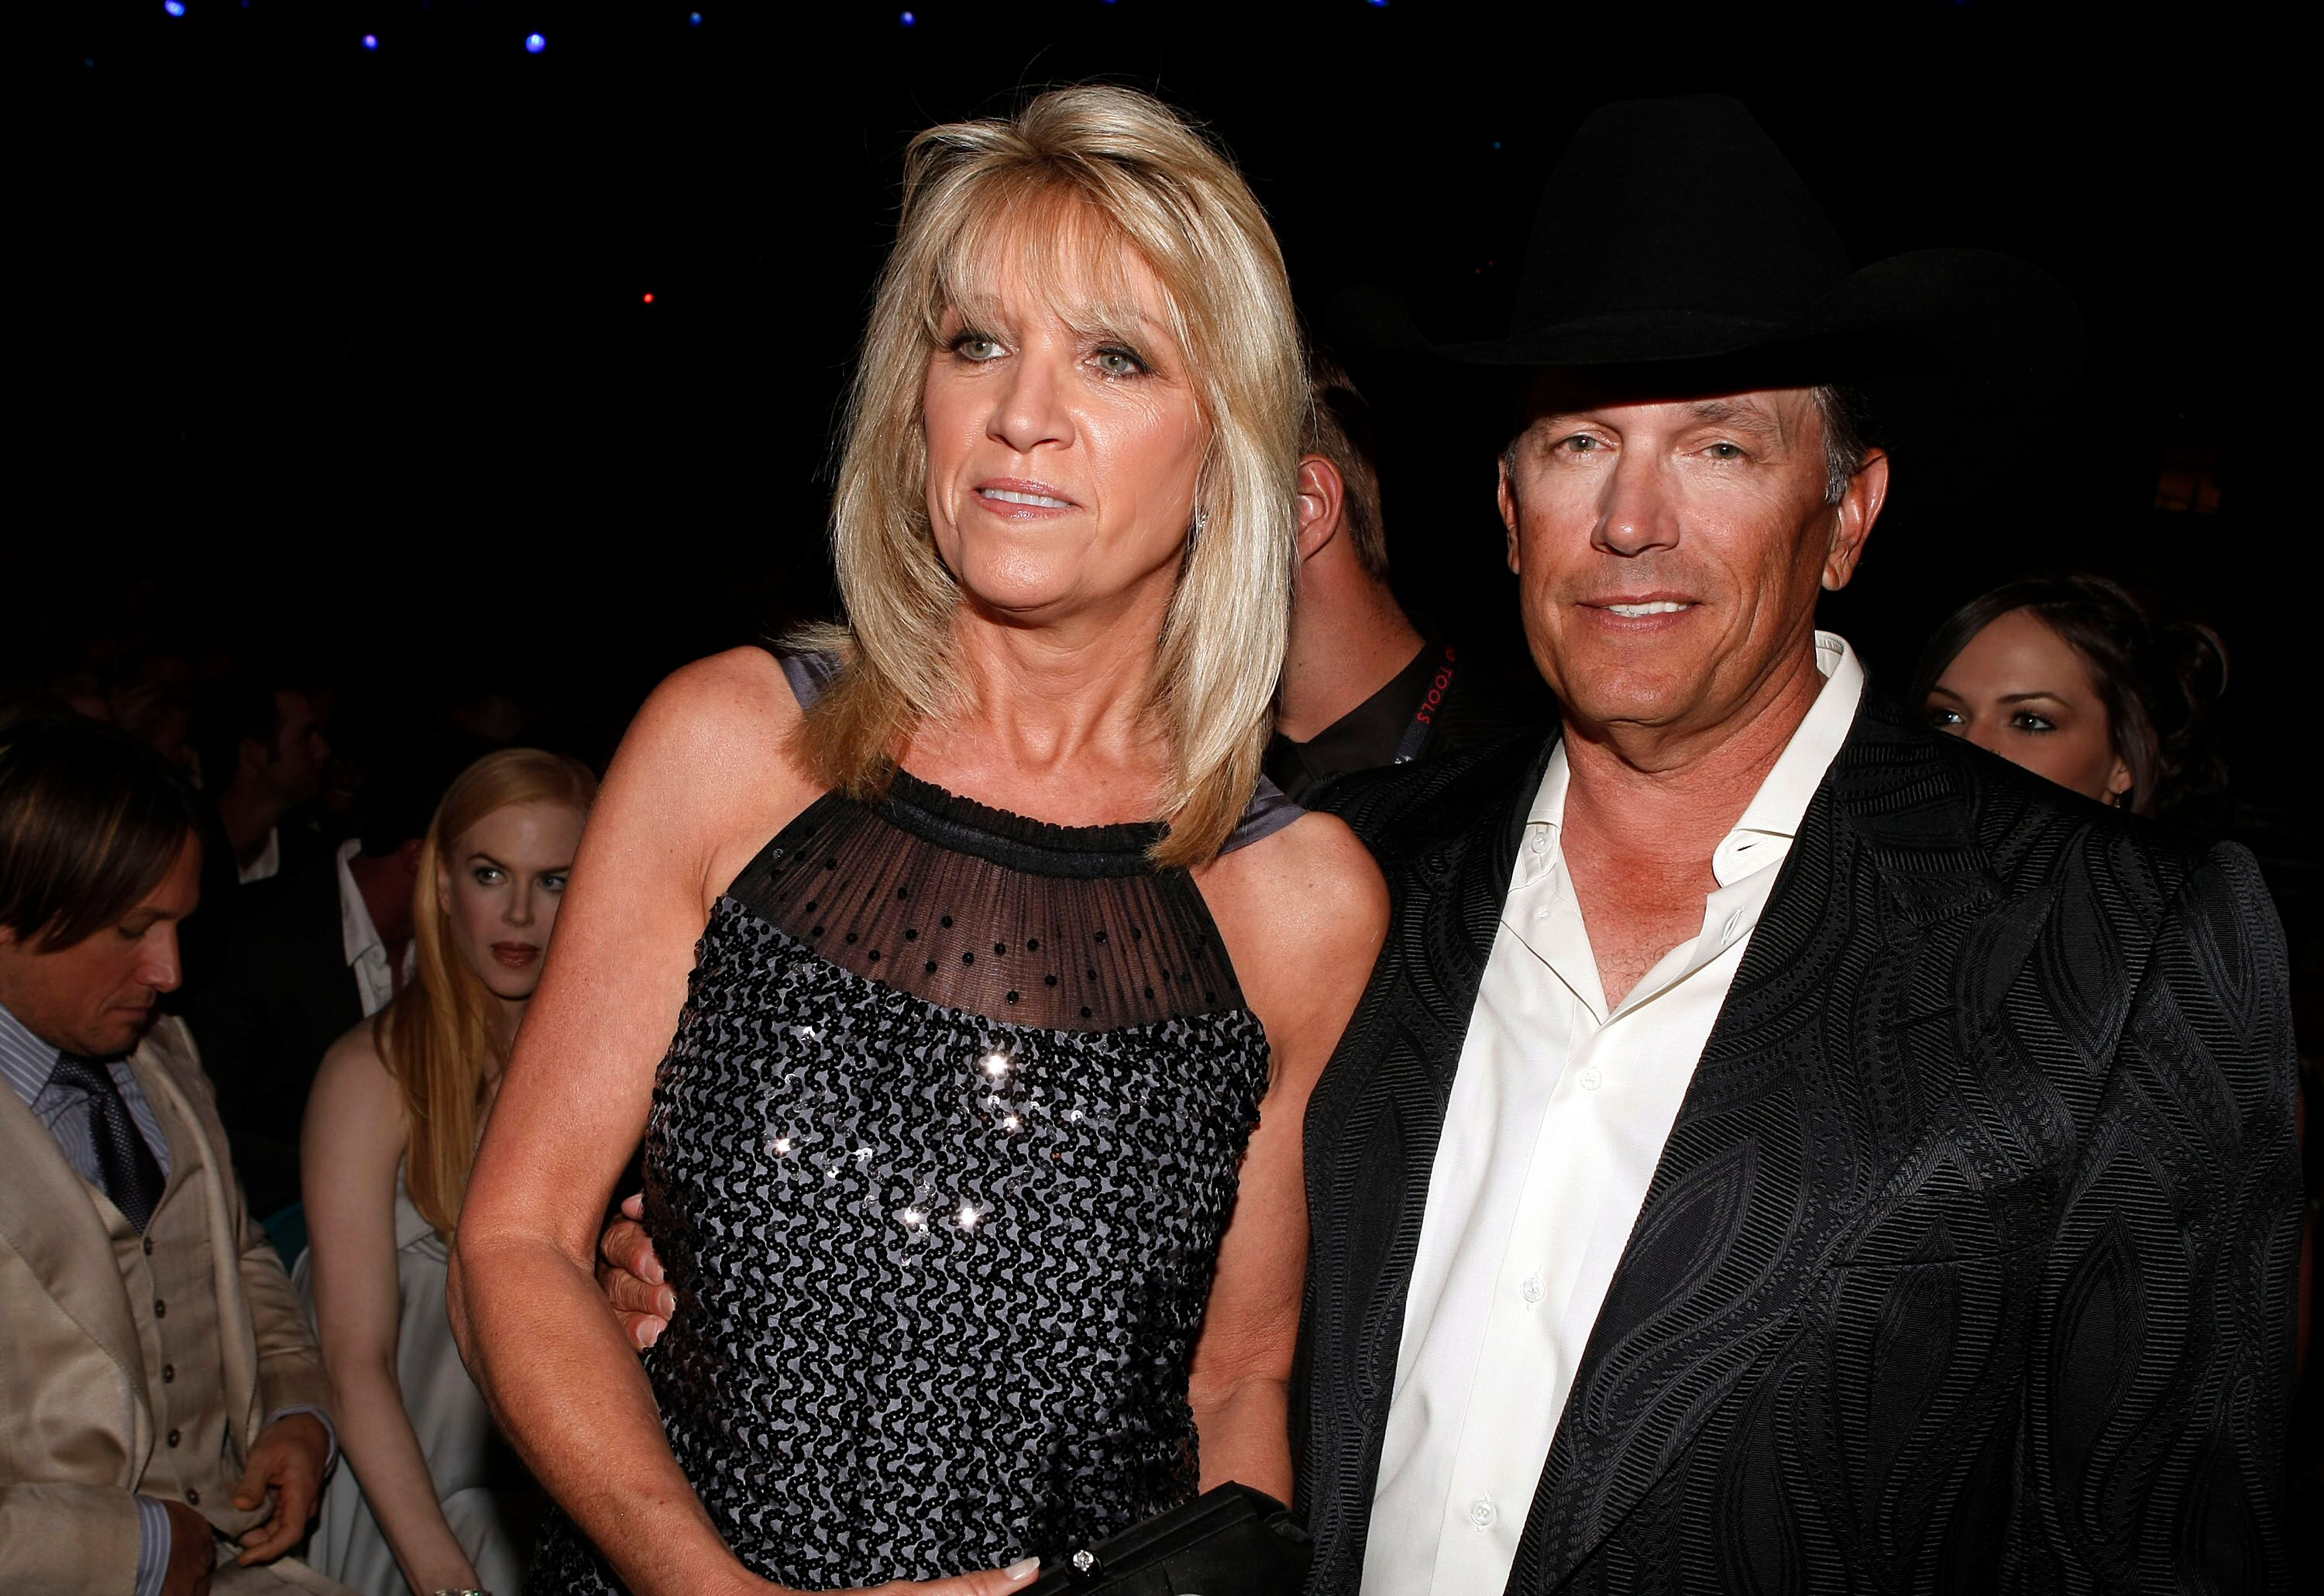 George Strait and Norma Strait attend the 43rd Academy of Country Music Awards.   Source: Getty Images